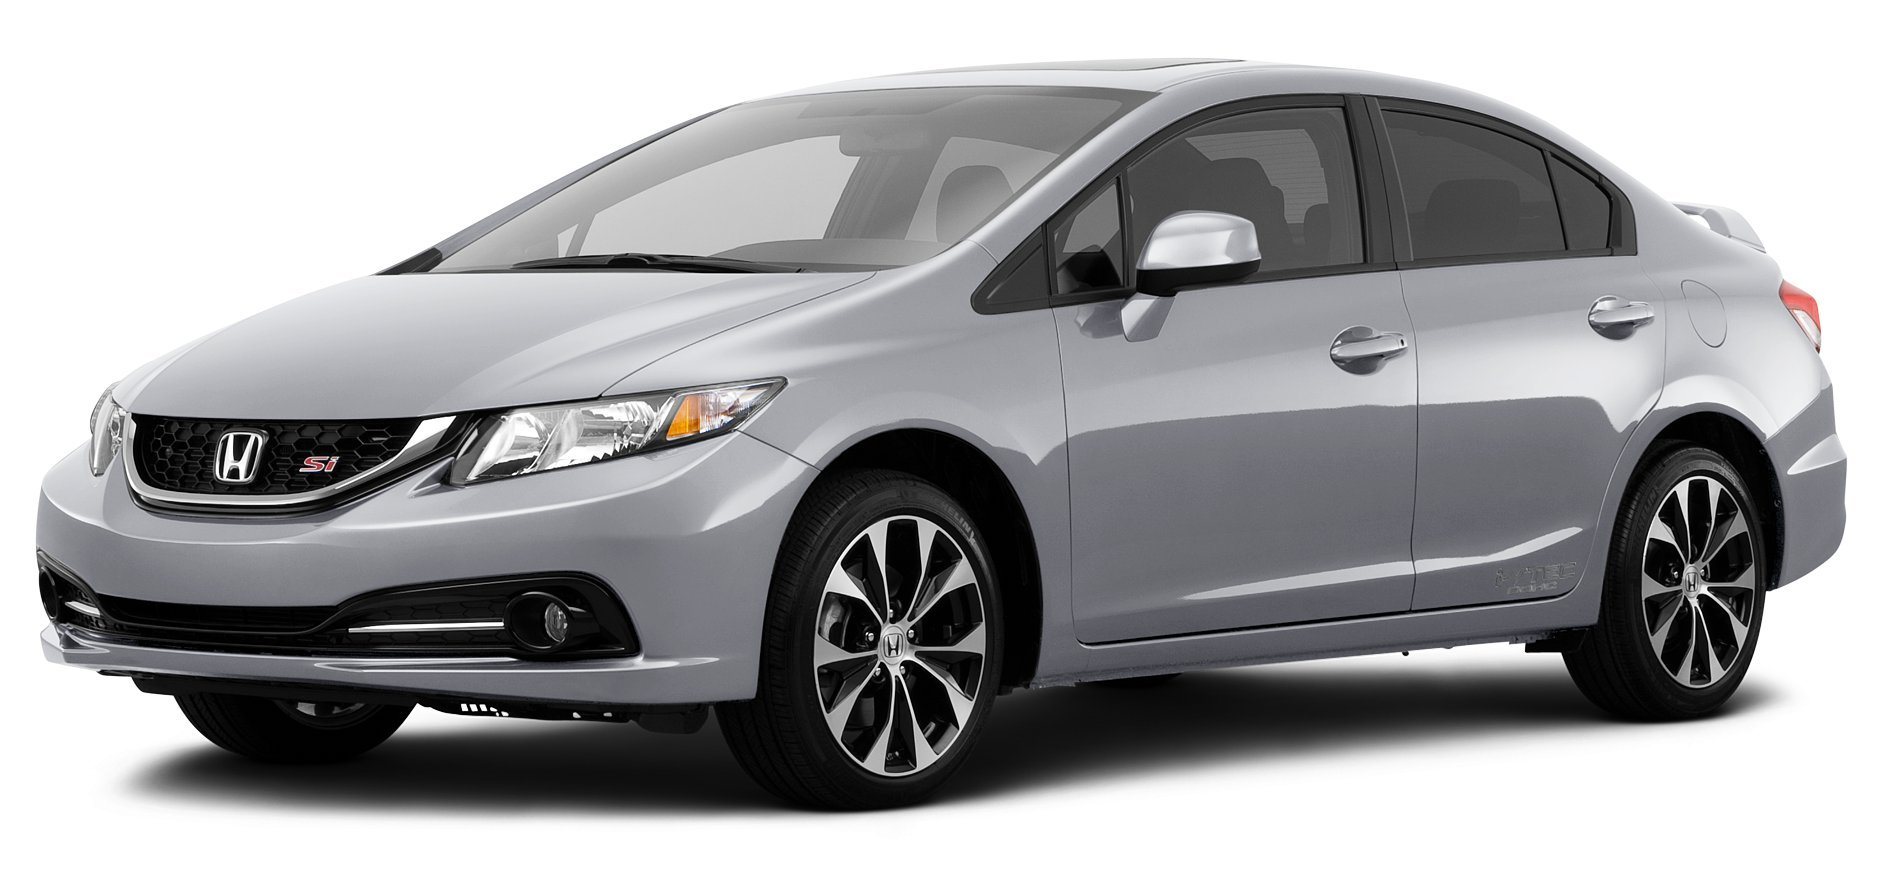 2013 mazda 3 reviews images and specs vehicles. Black Bedroom Furniture Sets. Home Design Ideas